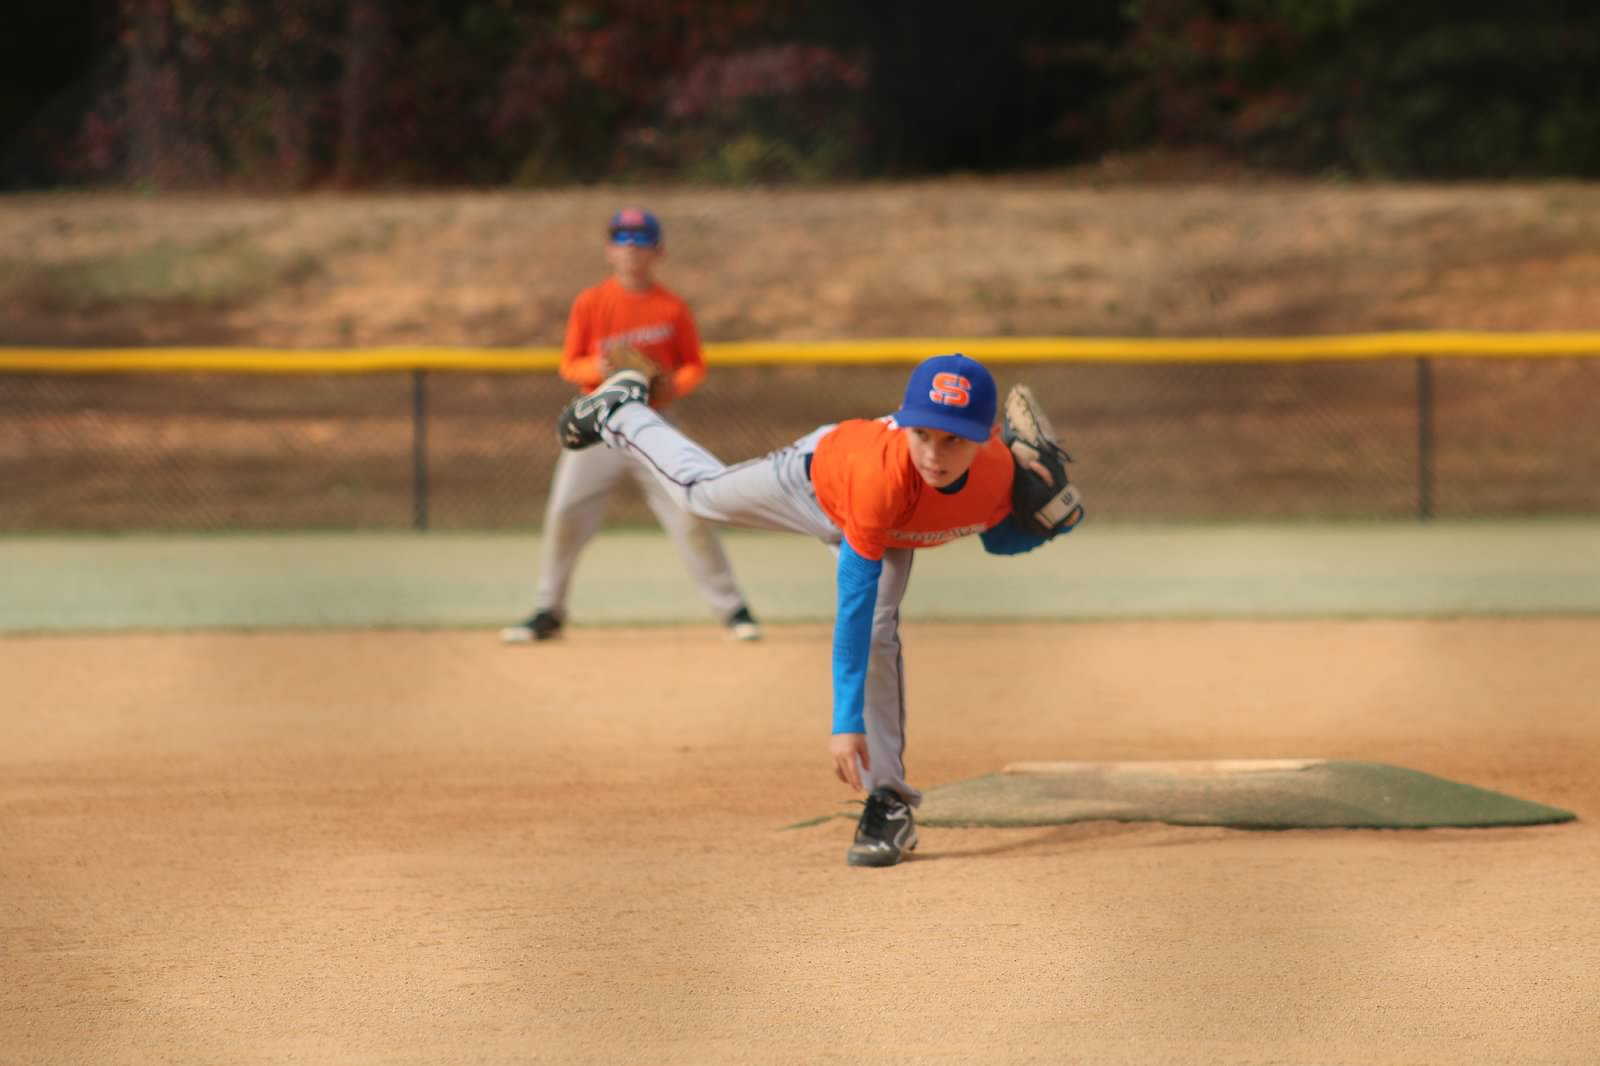 Hayden on the mound!